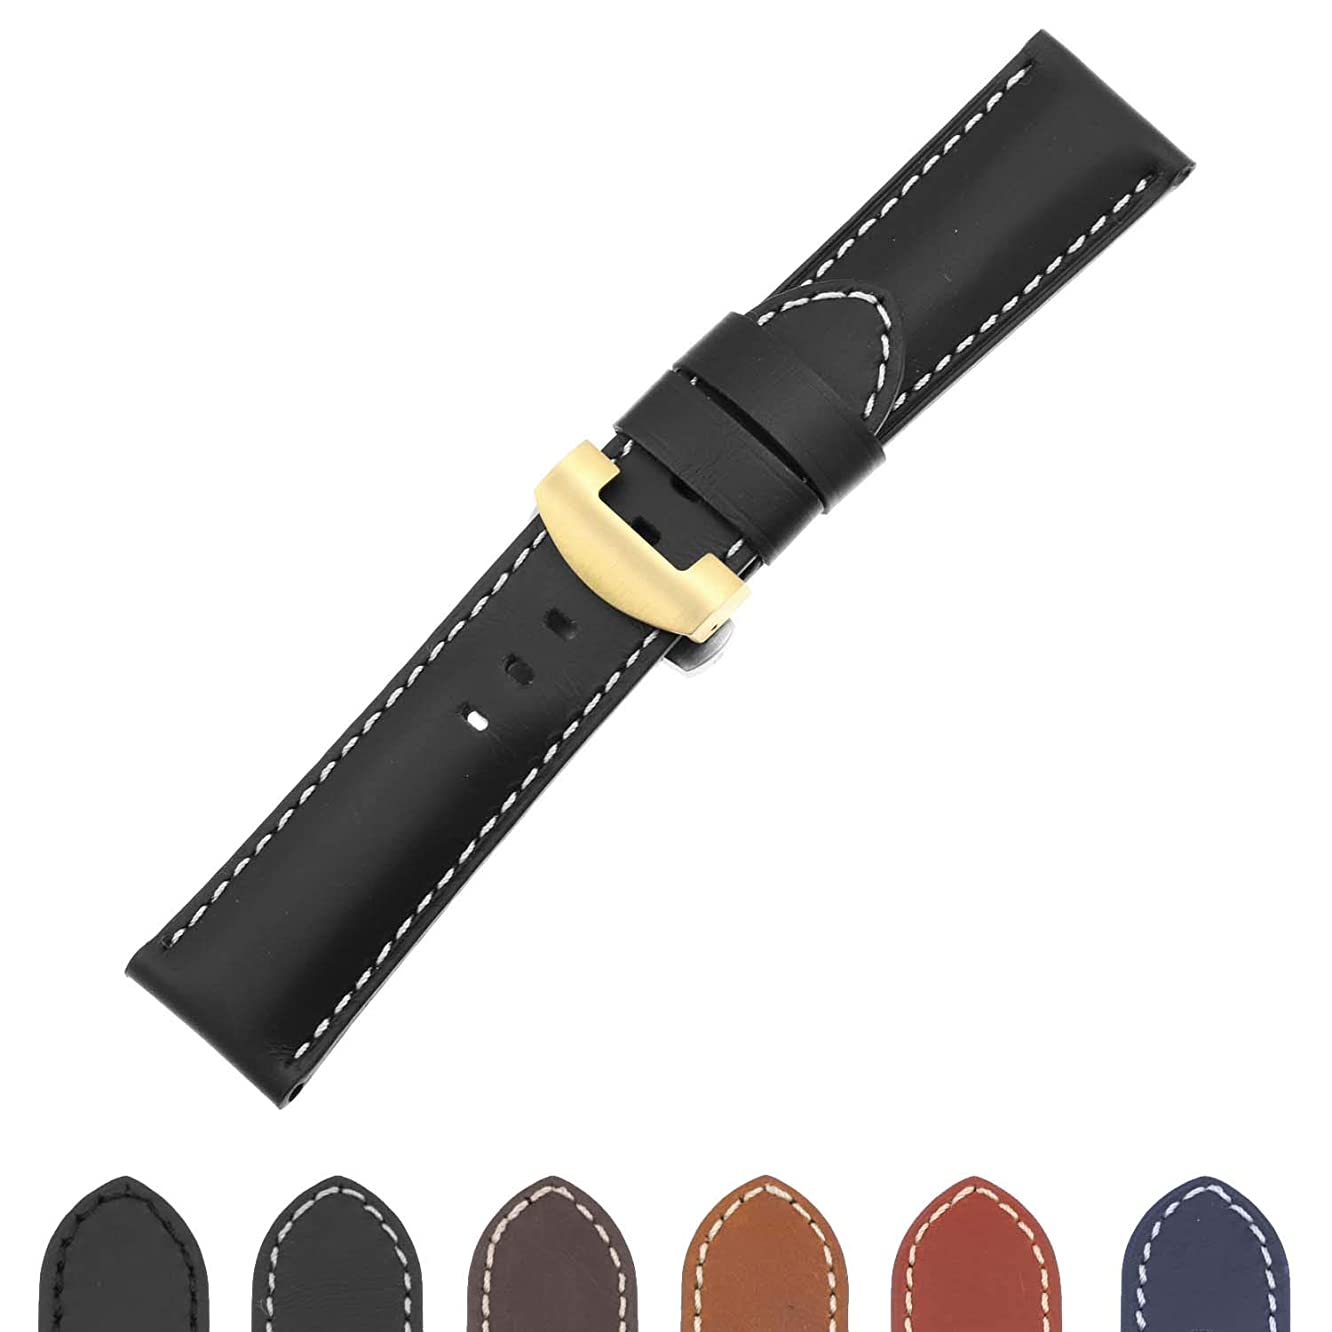 DASSARI Smooth Leather Men's Watch Band Strap with Yellow Gold Deployant Deployment Clasp for Panerai - 22mm 24mm 26mm